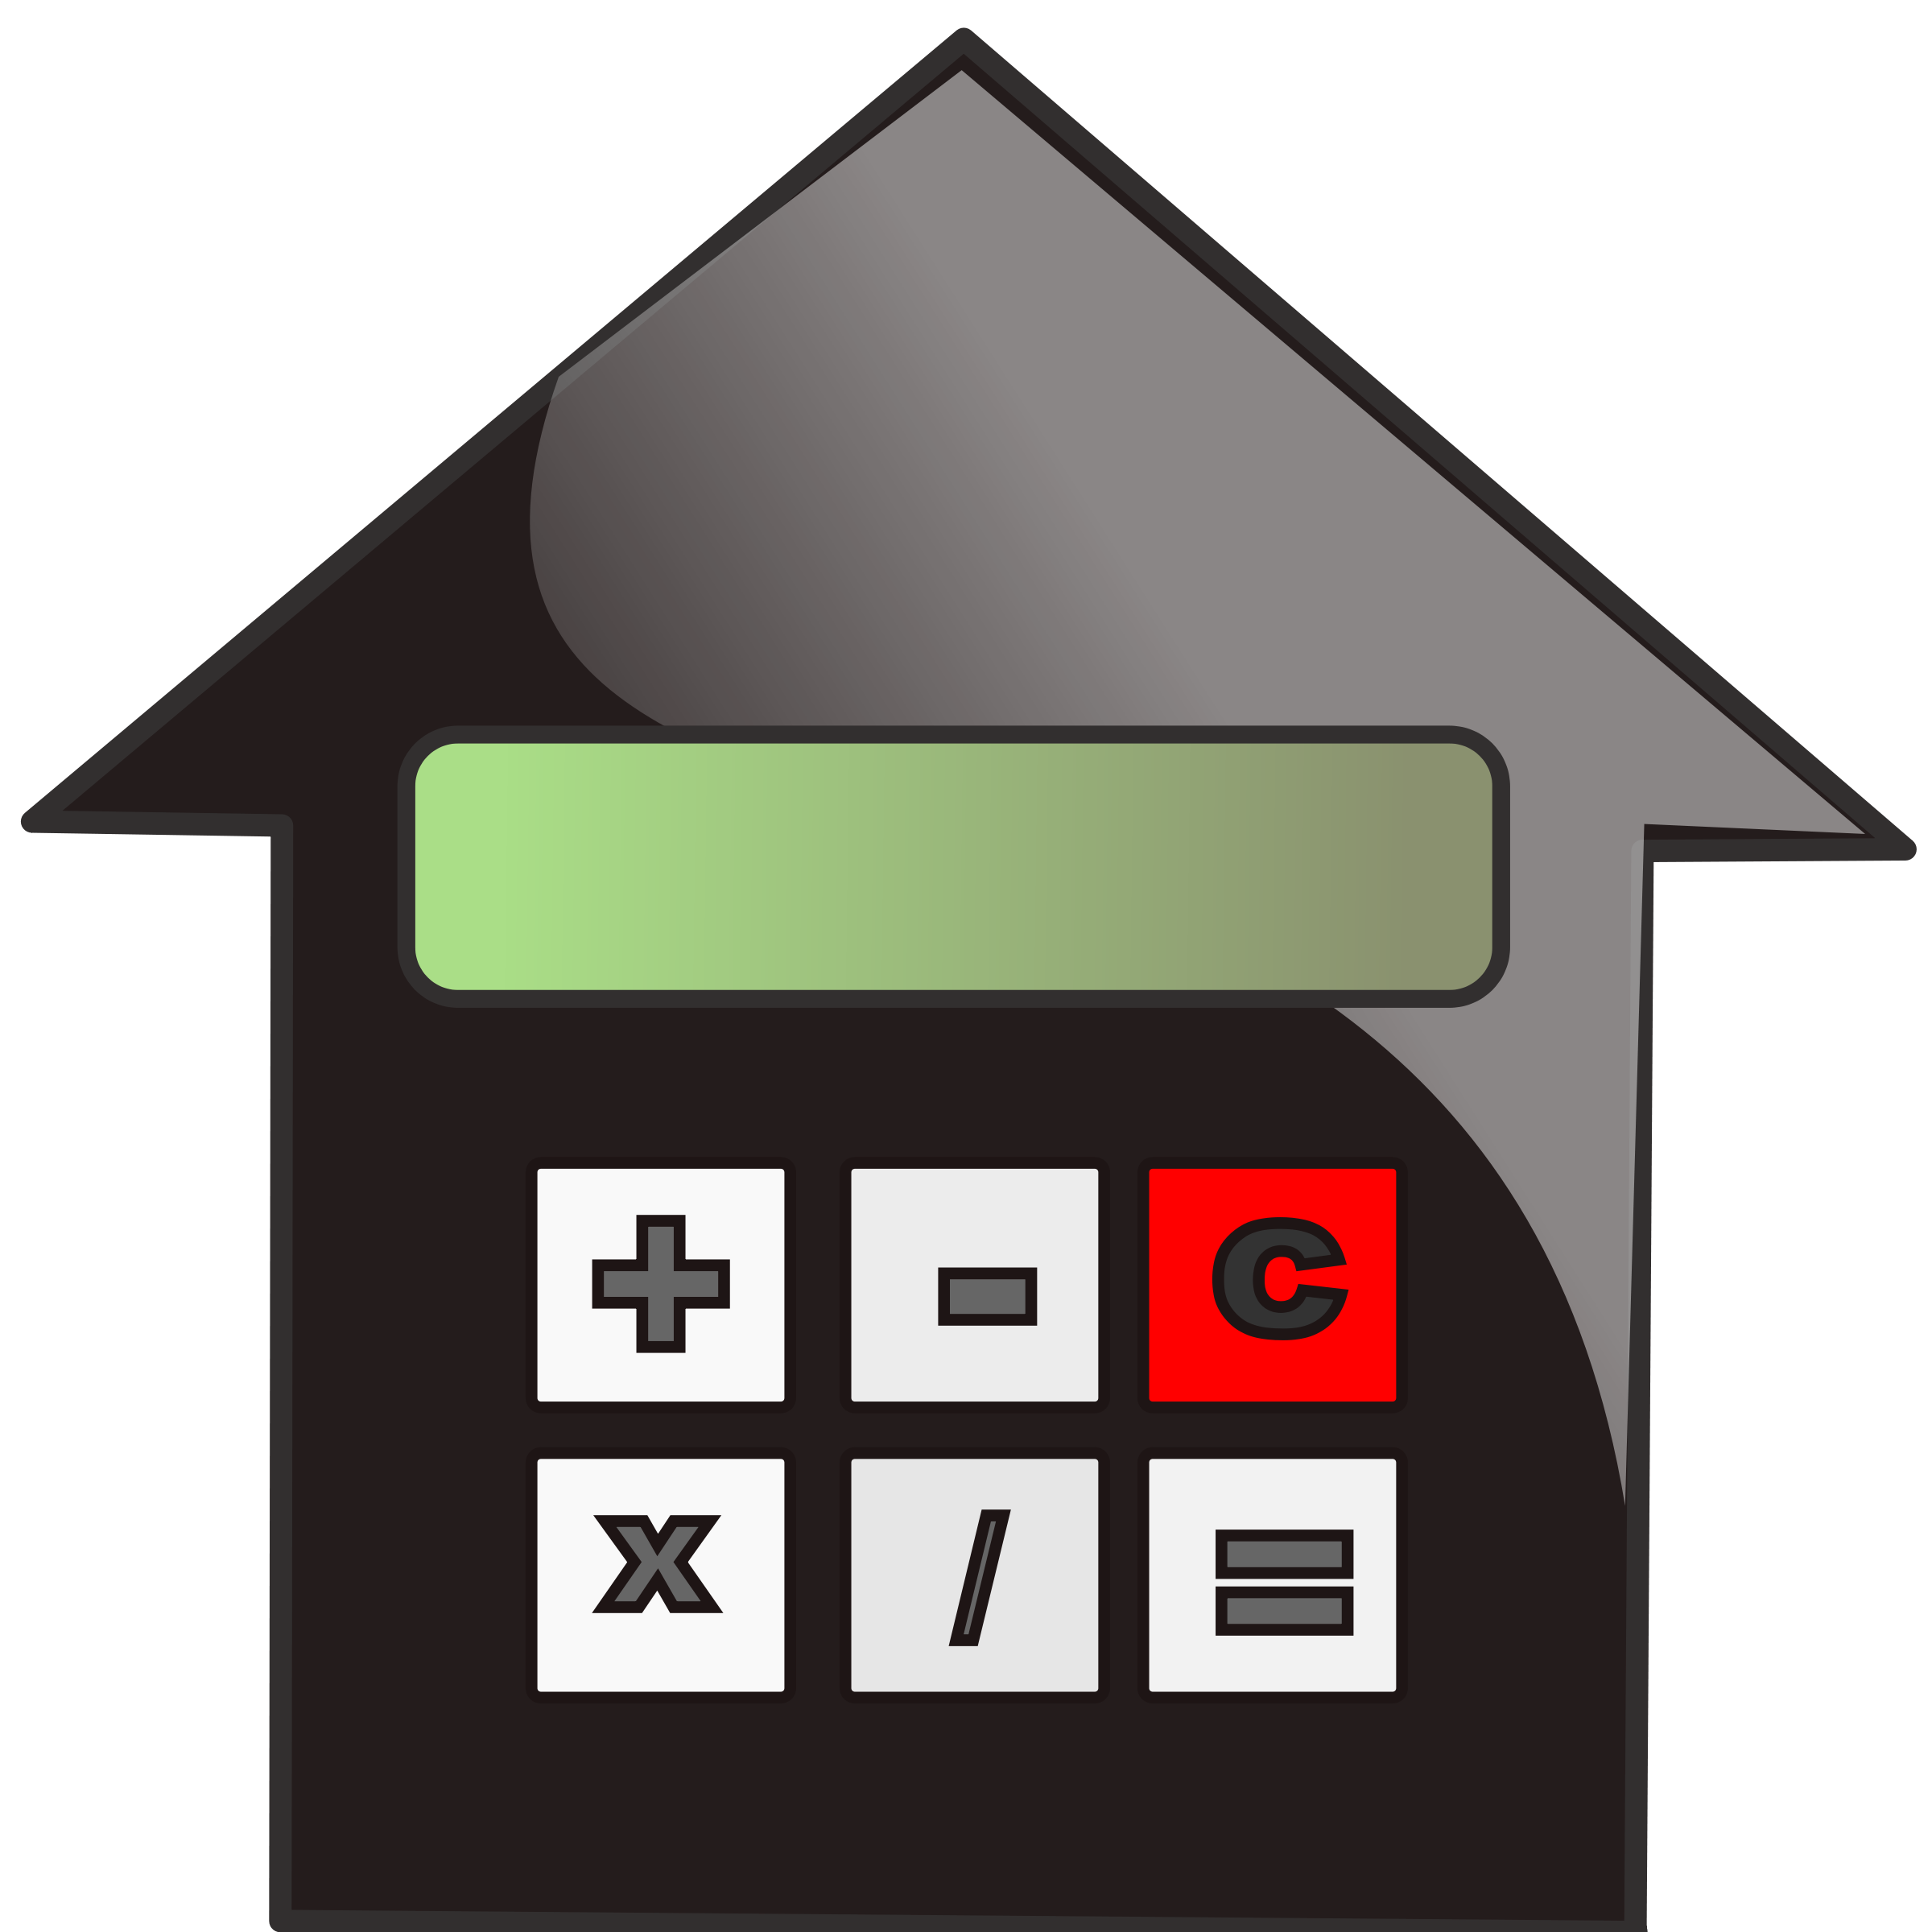 Ri renovations mortgage. Finance clipart variable cost